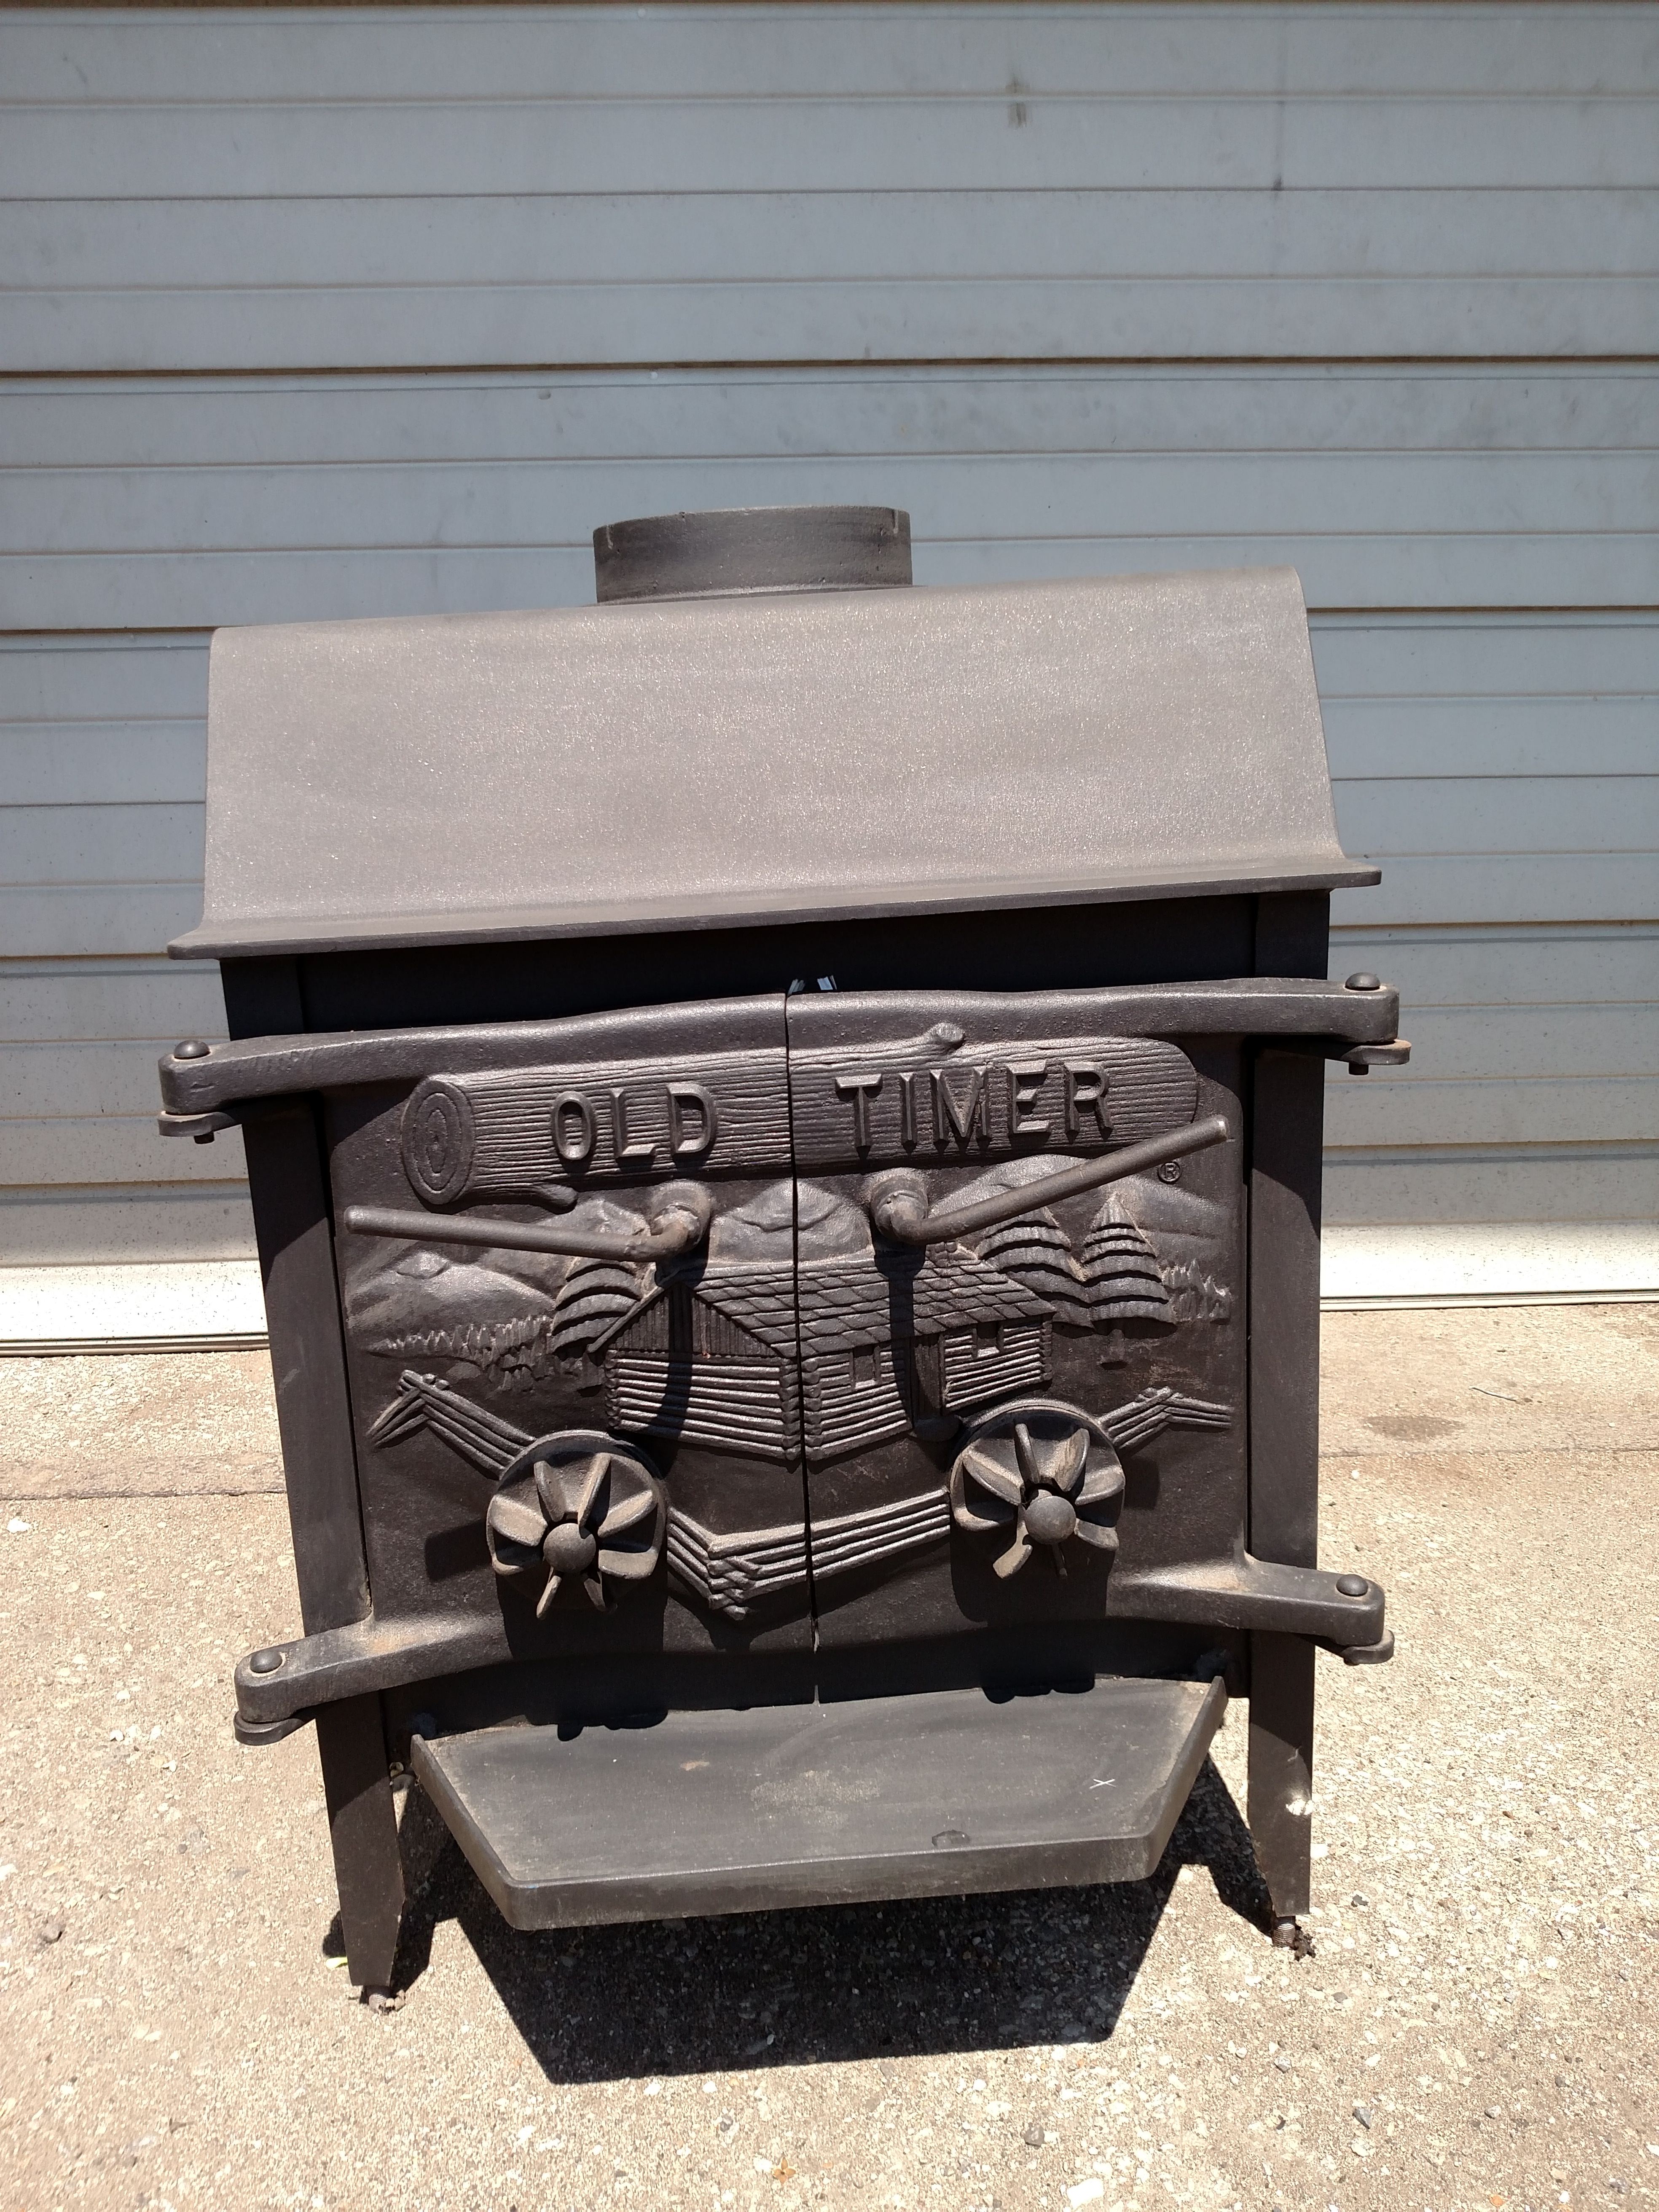 Wood Stoves For Sale >> Medium OldTimer Stove - The Stove Shop of Pekin